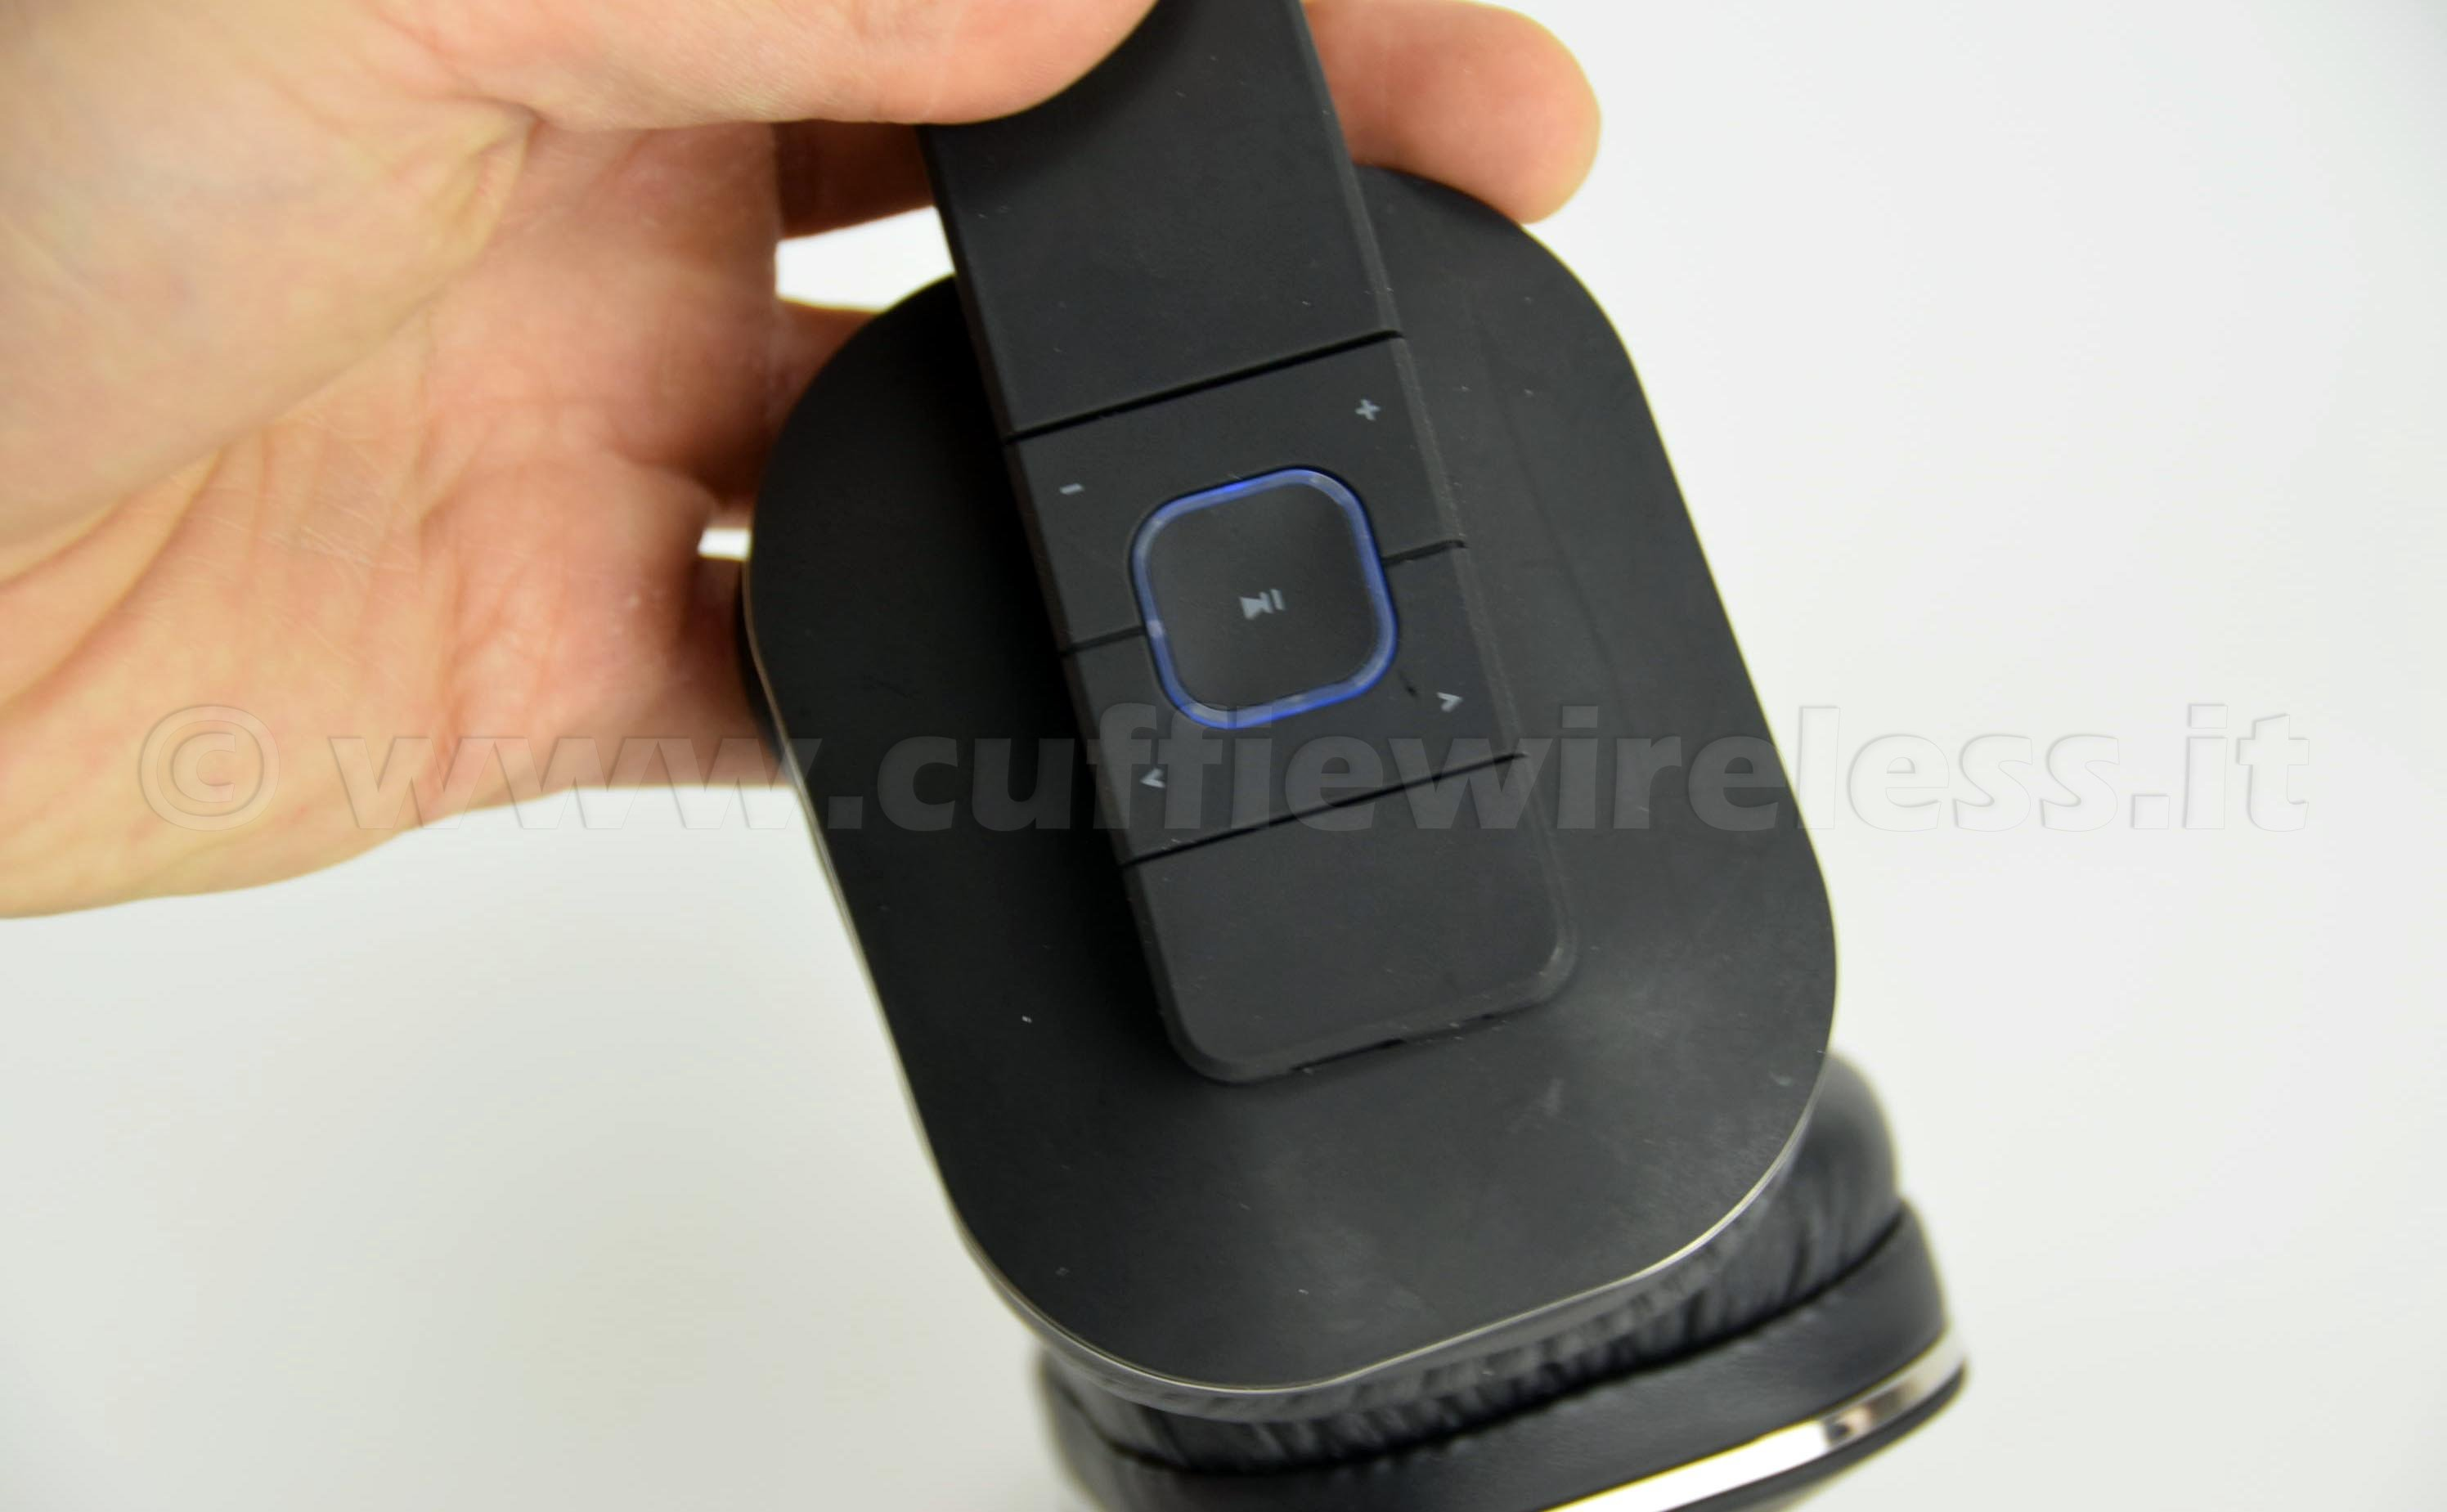 Cuffie wireless controlli 98235bb5fe69